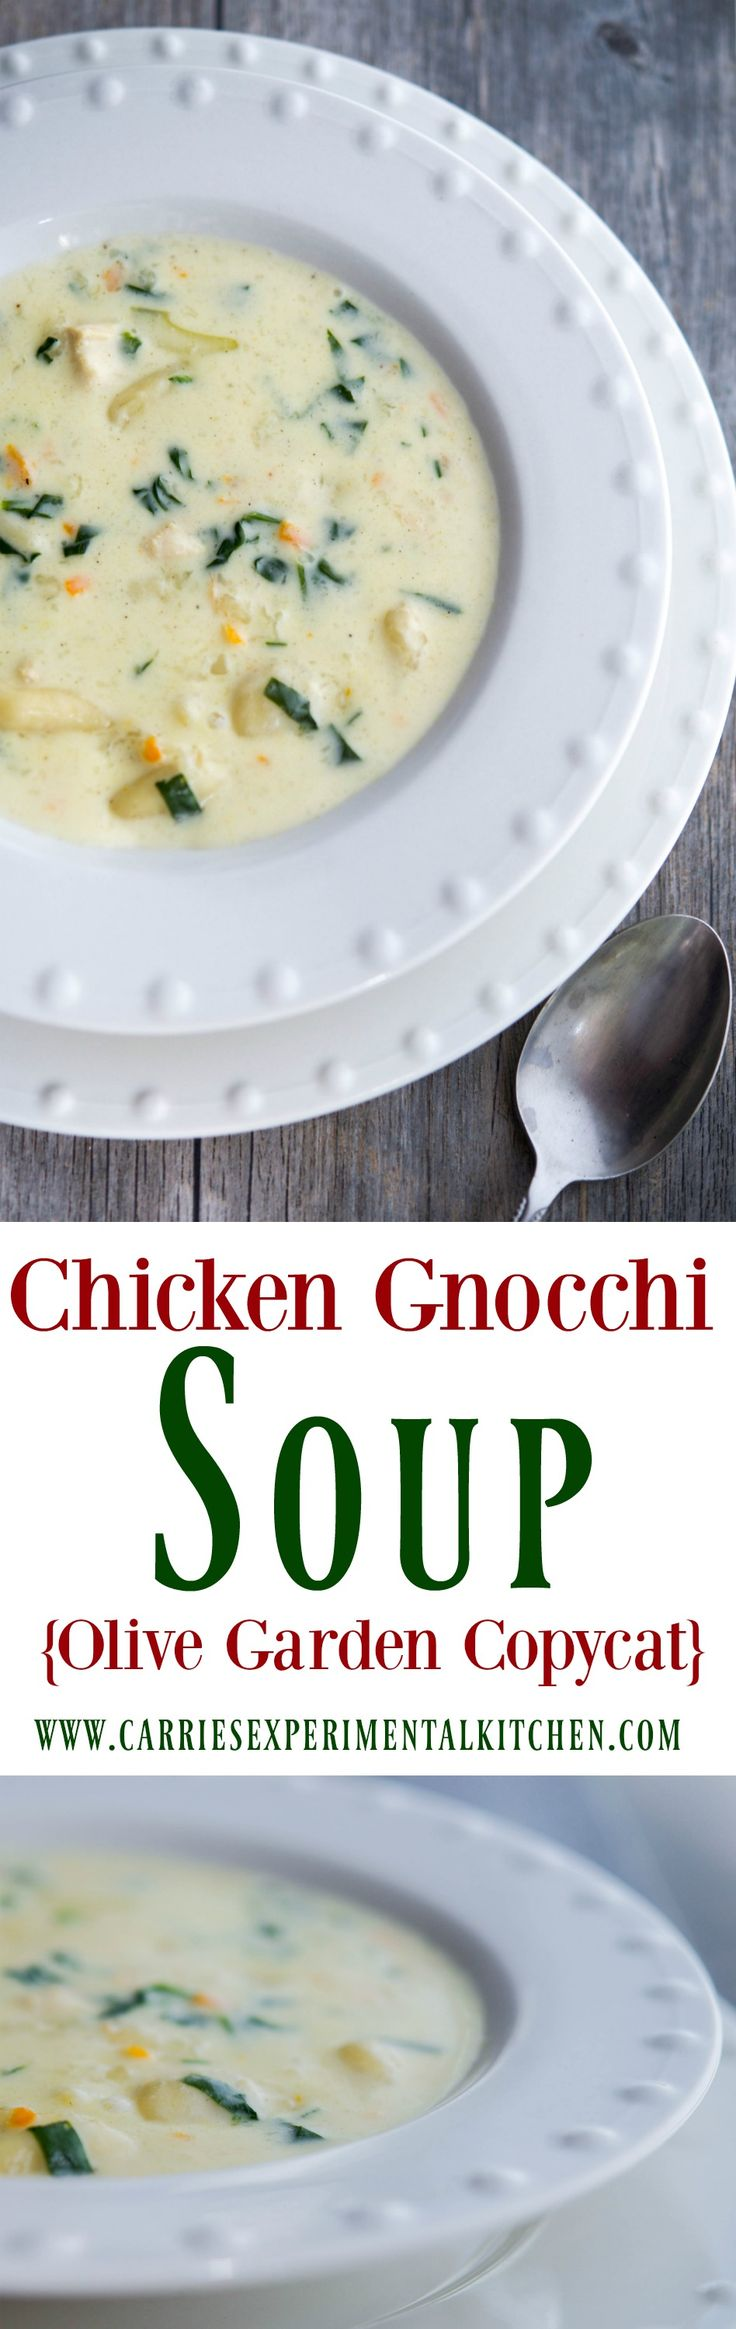 Enjoy one or your favorite restaurant copycat soups at home with my version of Olive Garden's Chicken Gnocchi Soup.